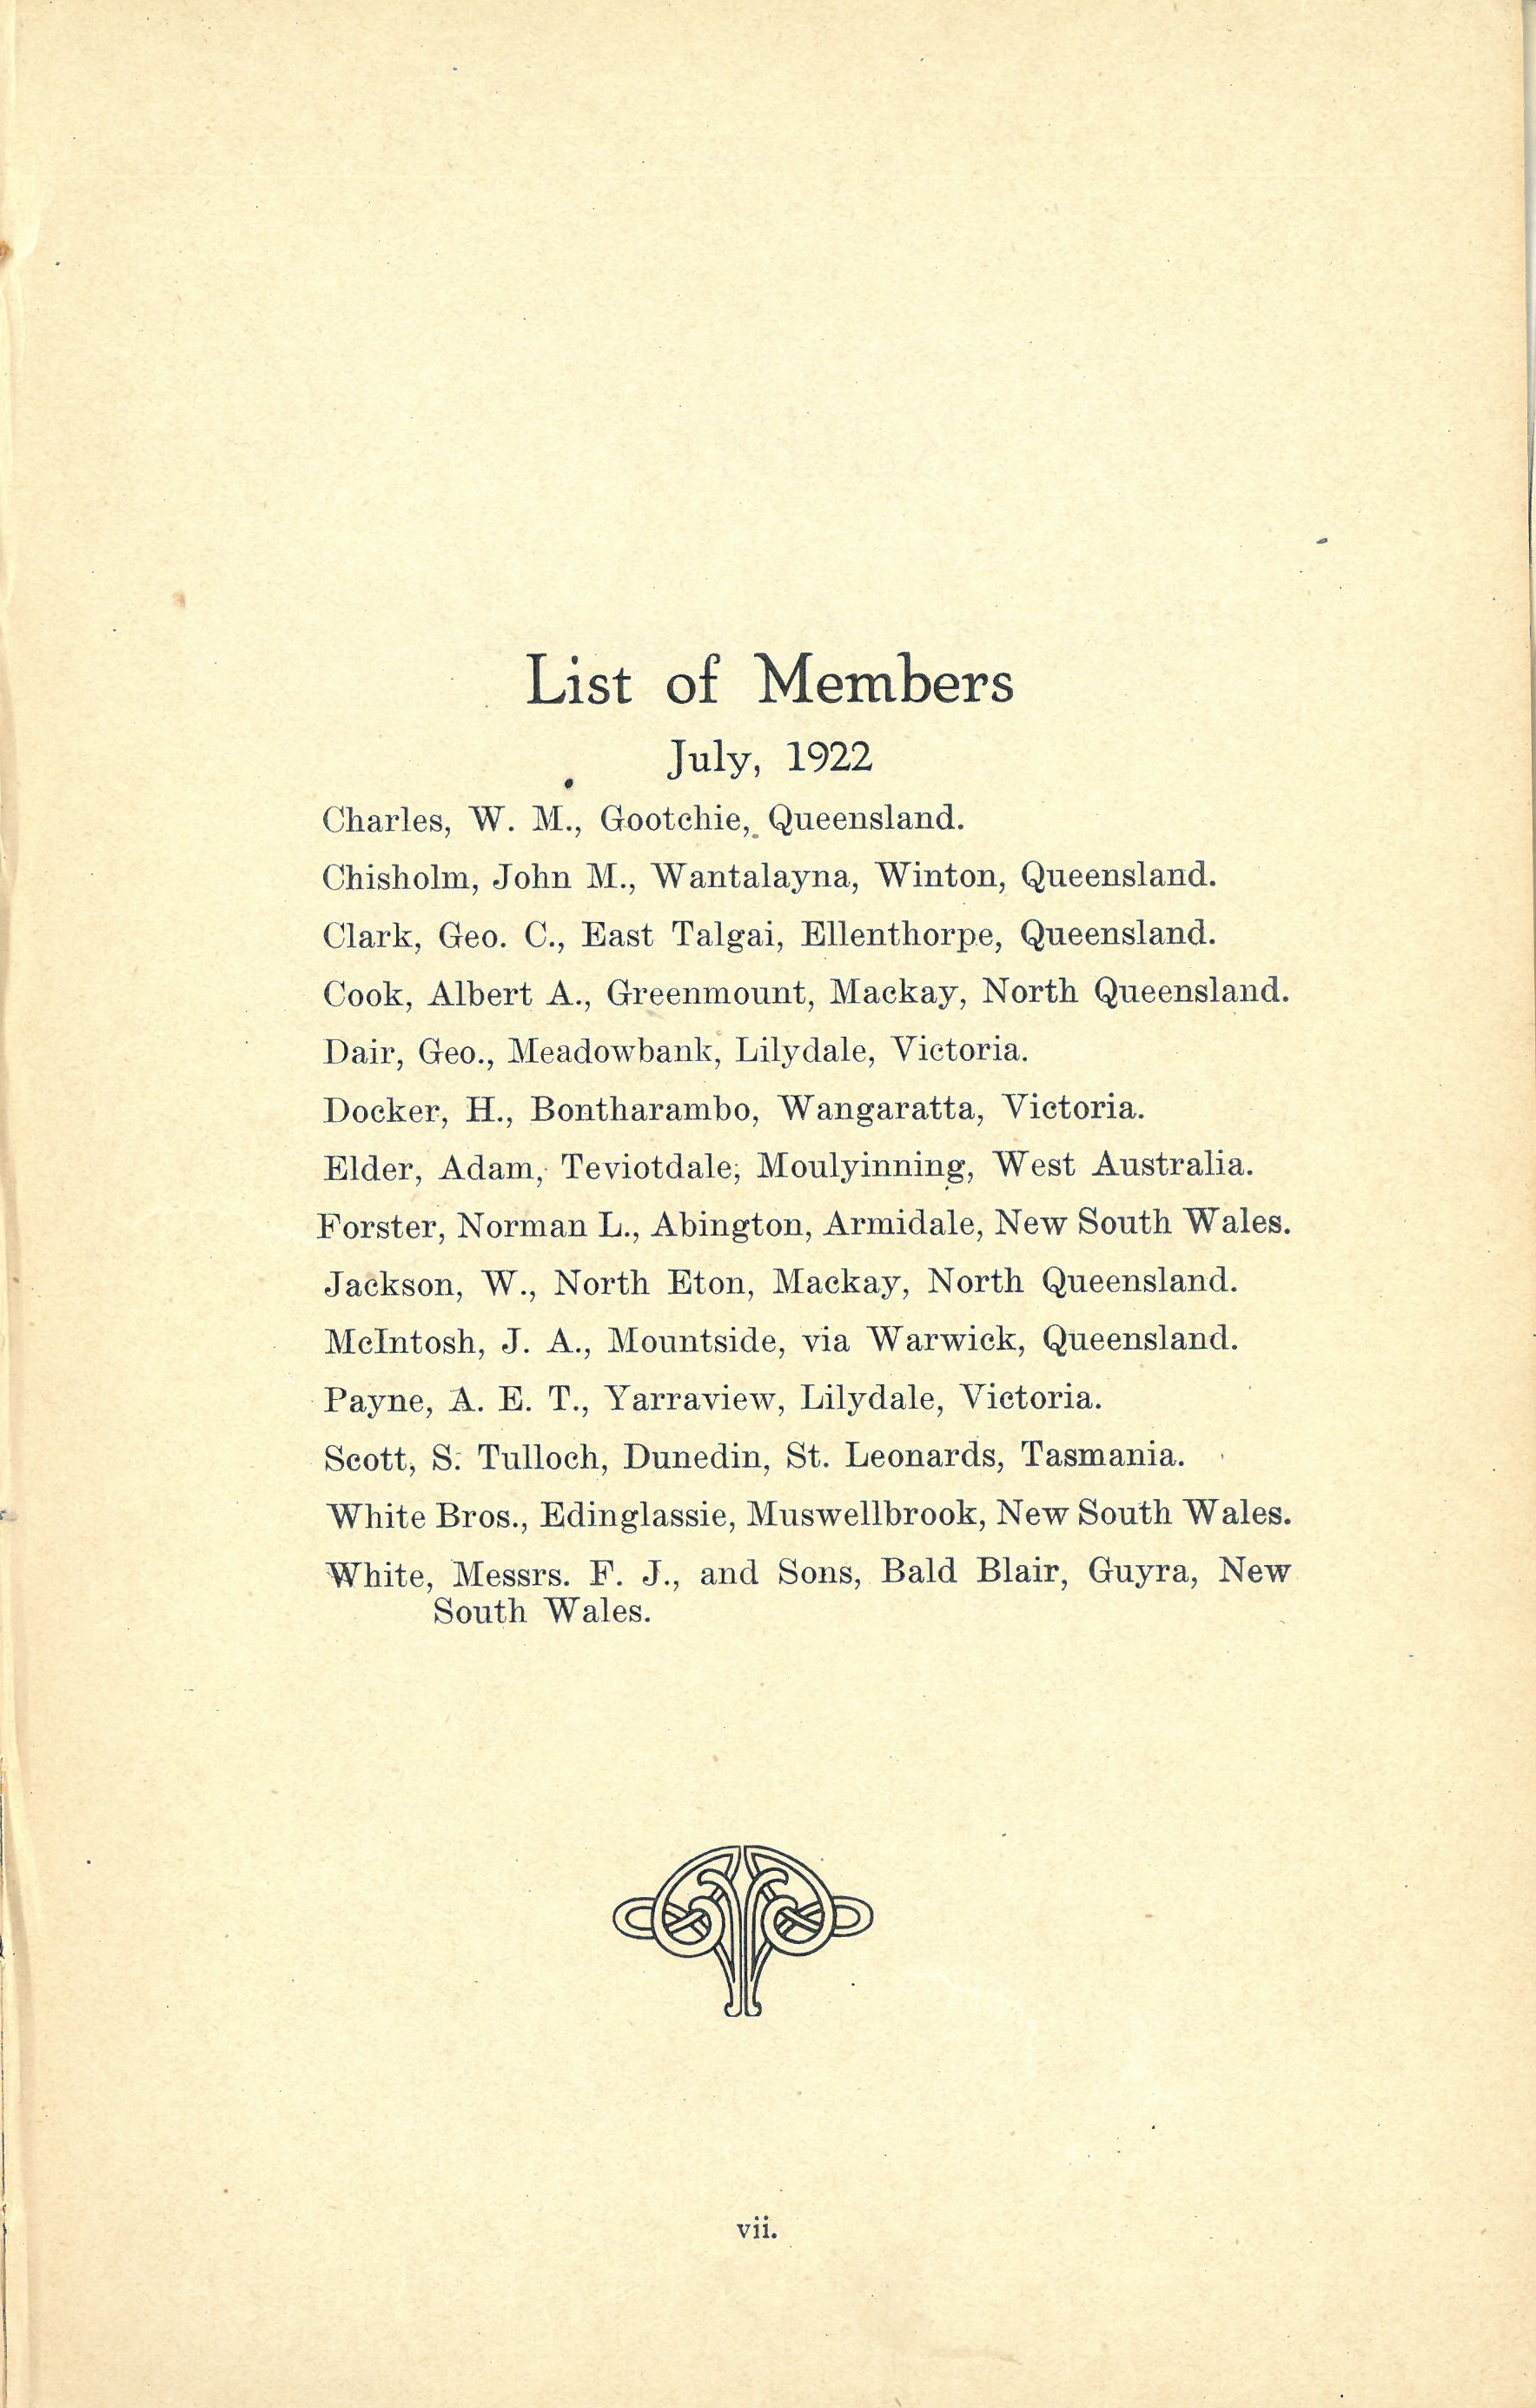 First list of members